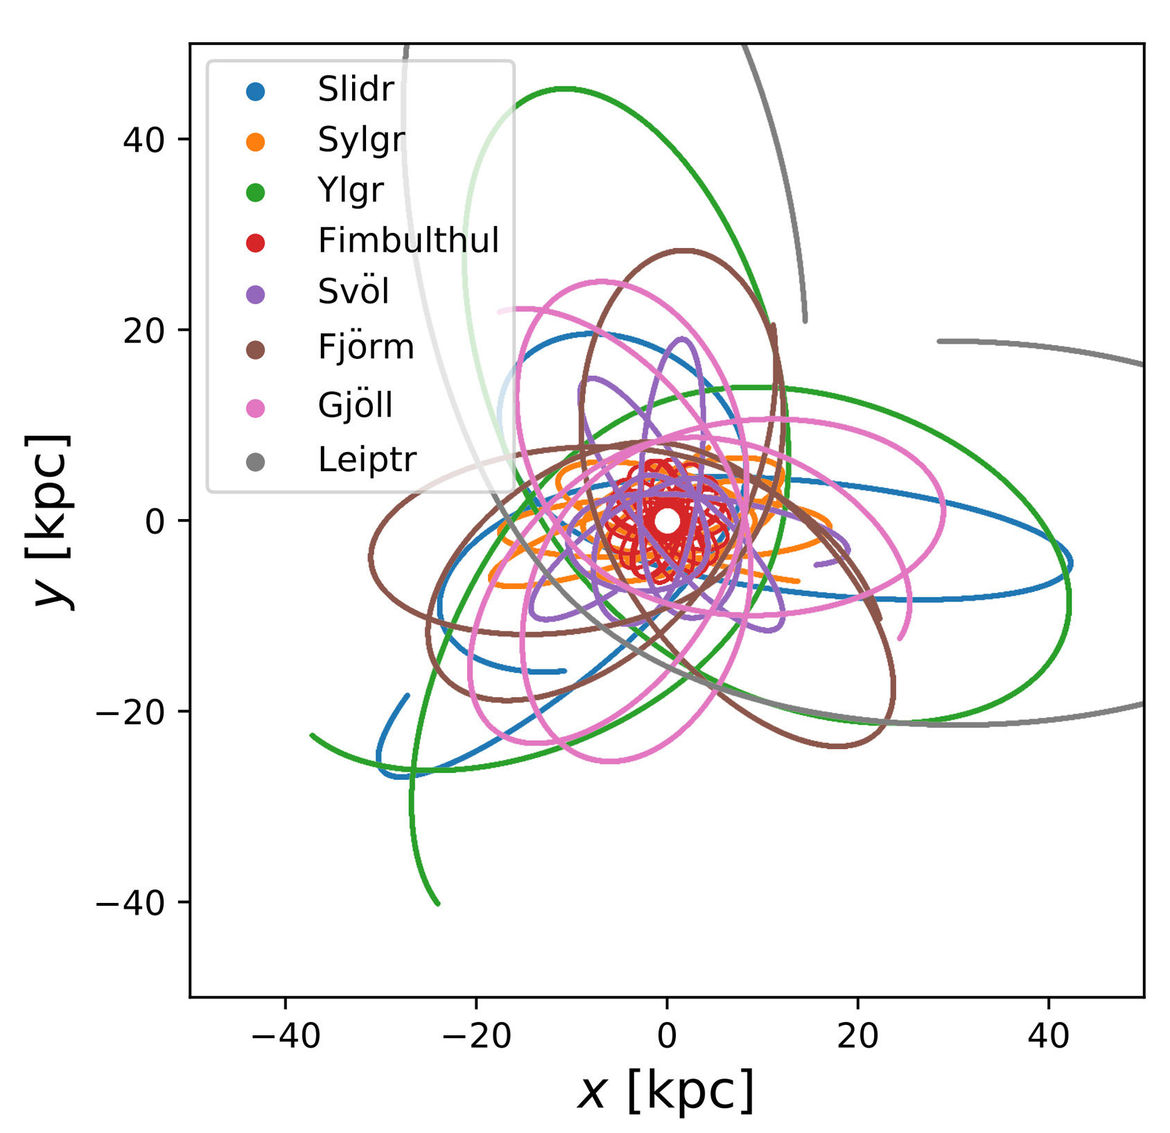 The orbits of streams of stars in Gaia data as if you are looking down on the center of the Milky Way. The scale is in kiloparsecs (1 kpc = 3,260 light years). Credit: Ibata et al.